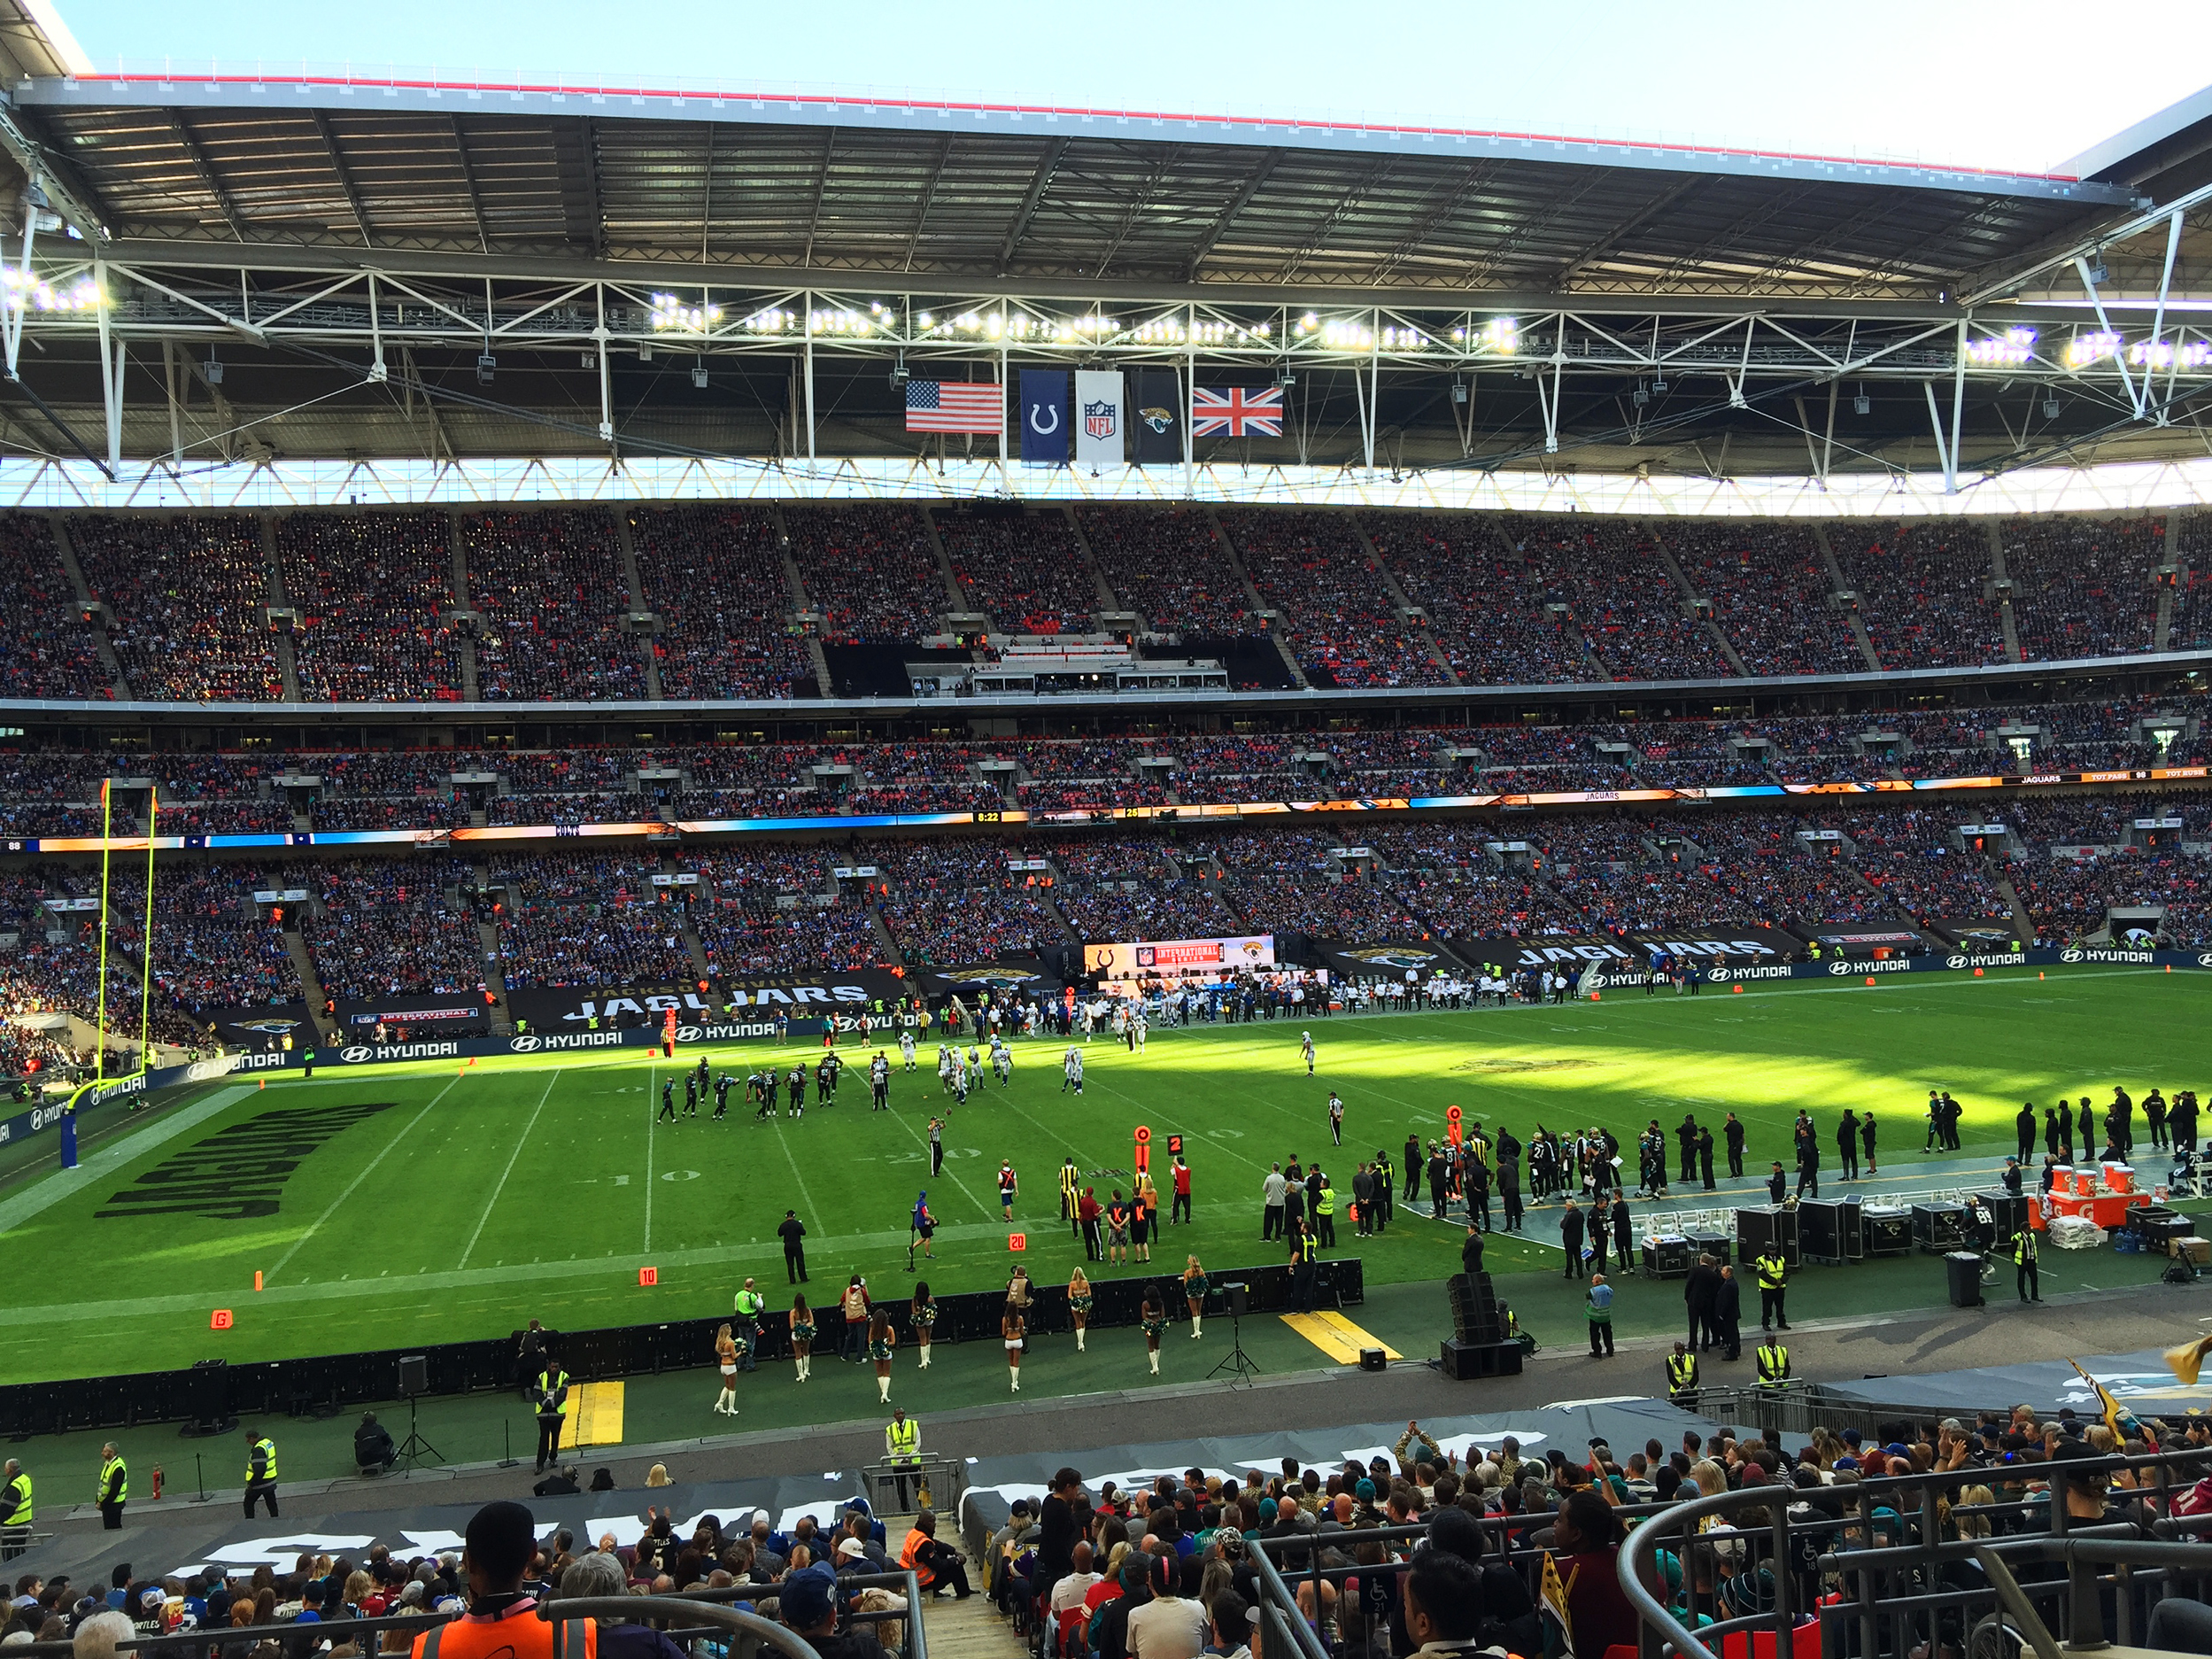 Thousands of fans wearing jerseys representing all 32 NFL teams attend opening day of the NFL's International Series at London's Wembley Stadium on Sunday. Frank Langfitt/NPR.